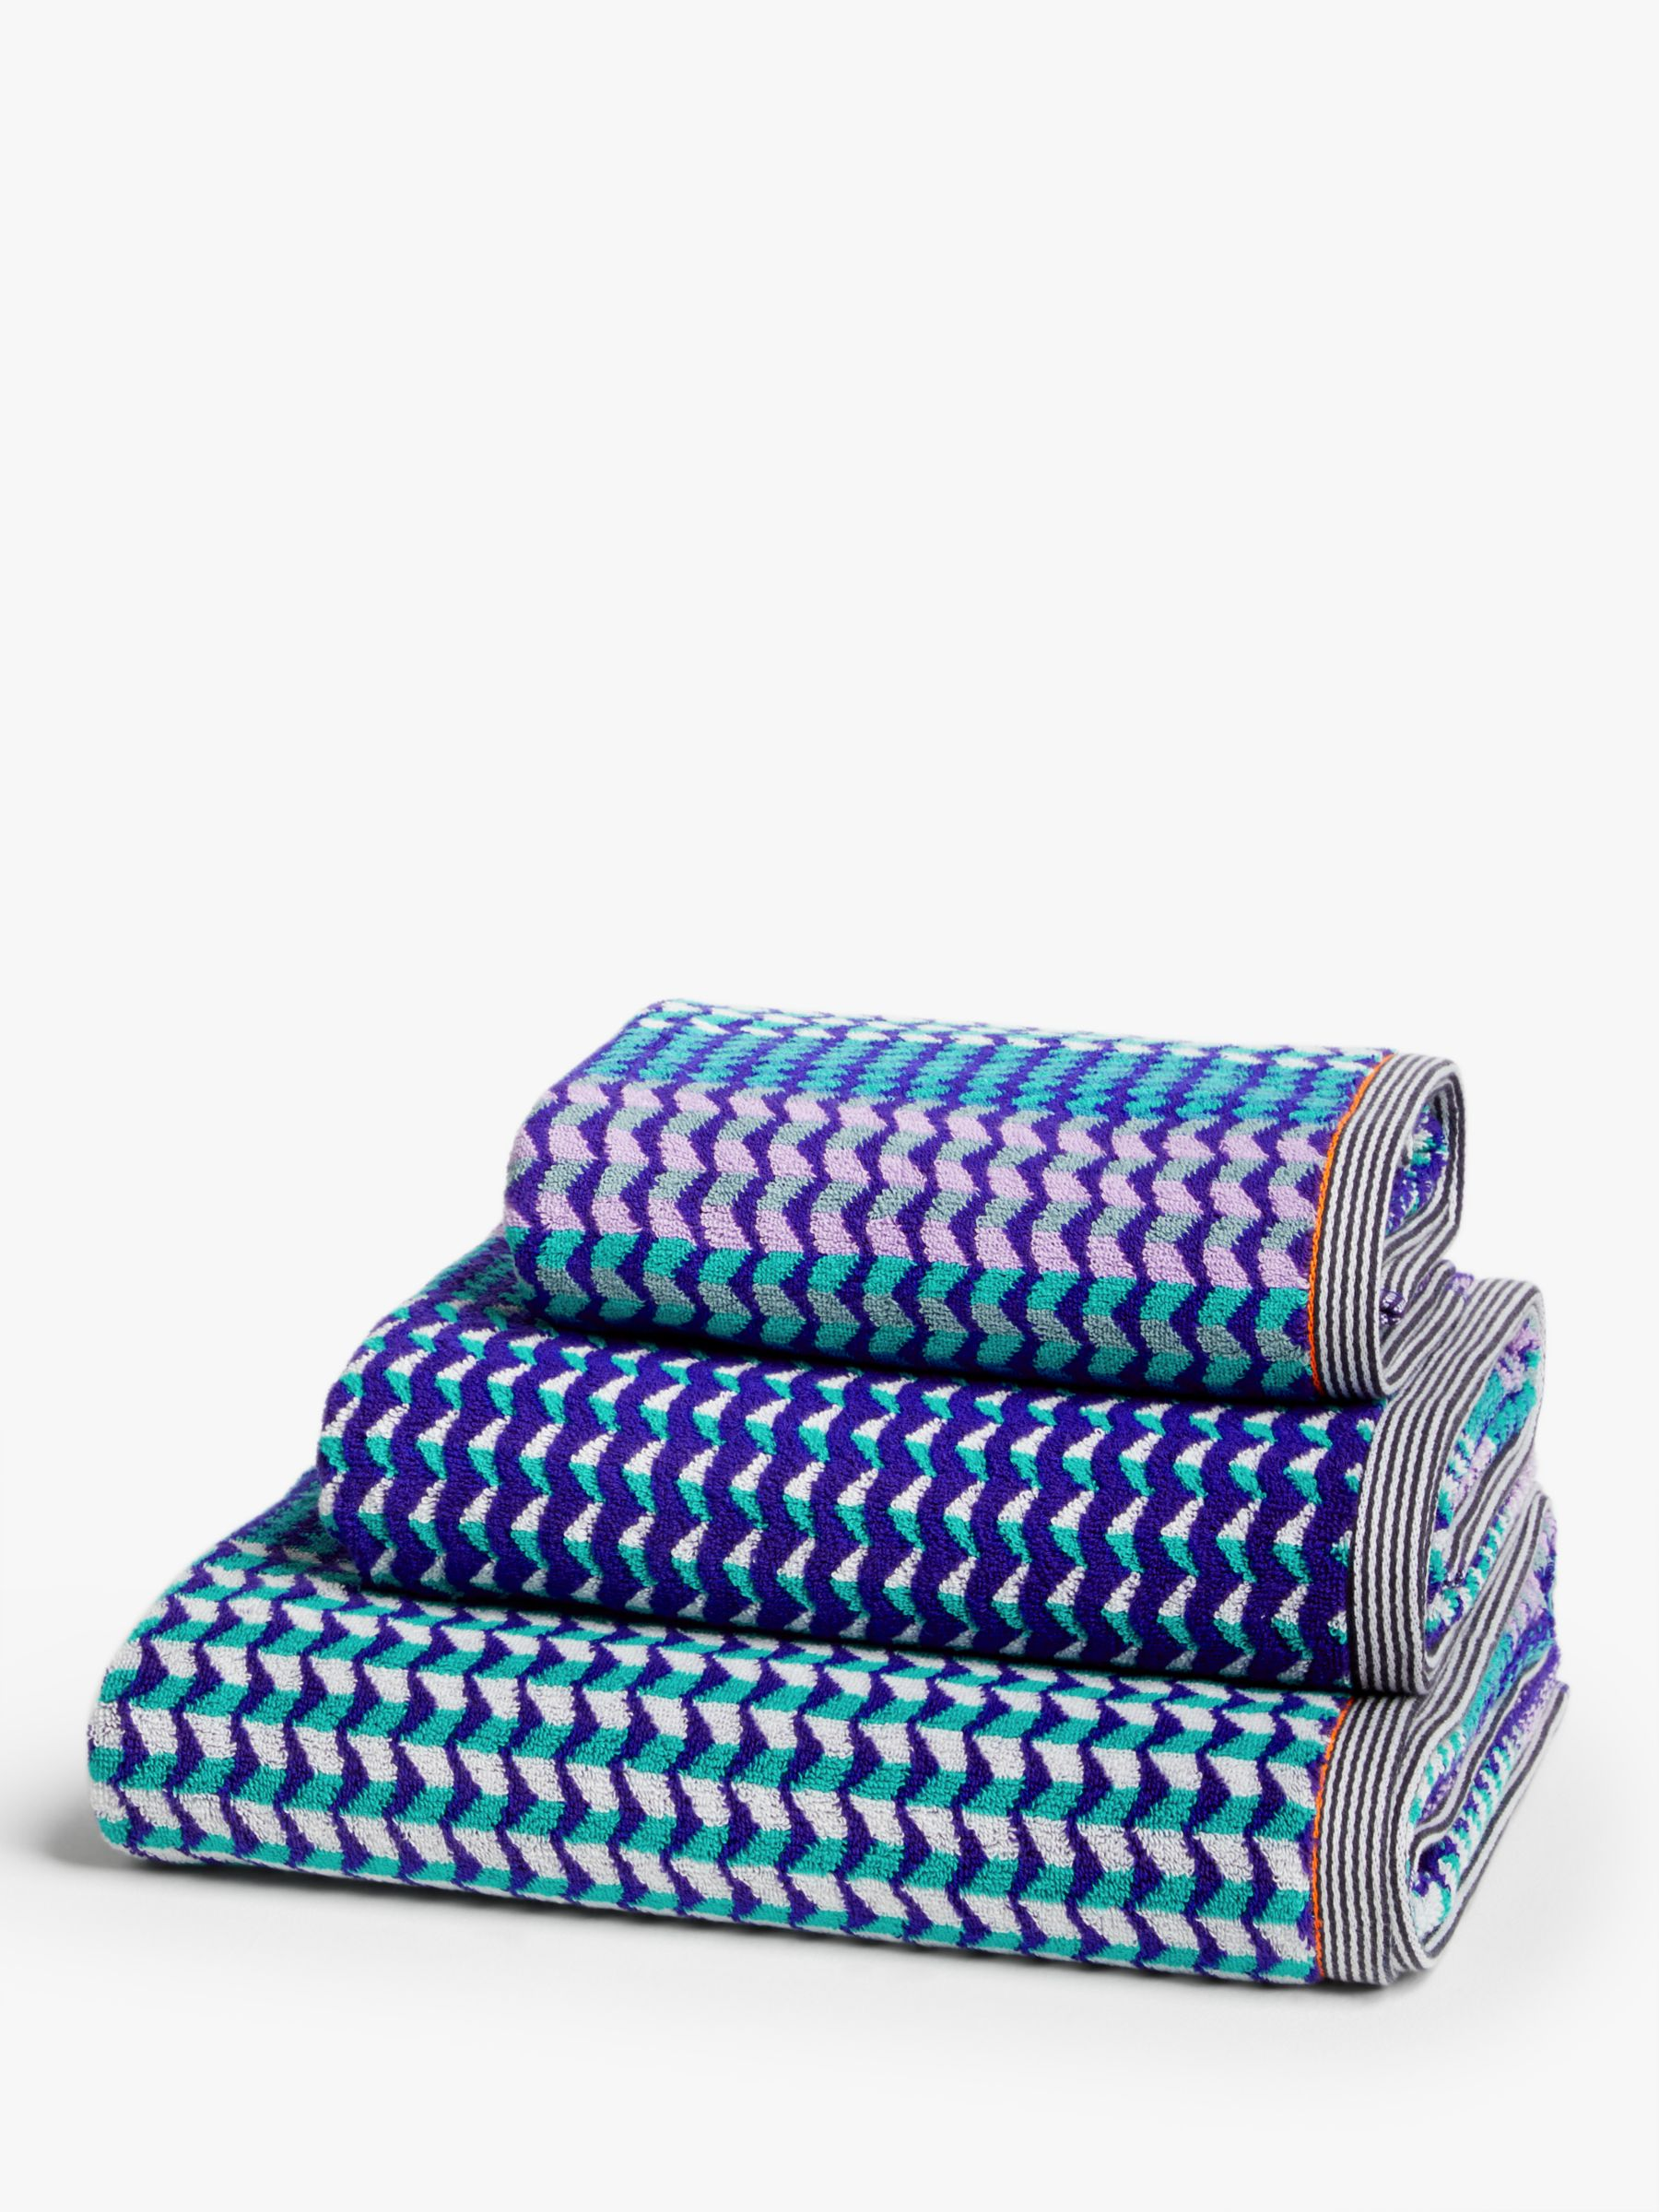 Margo Selby Margo Selby Botany Towels